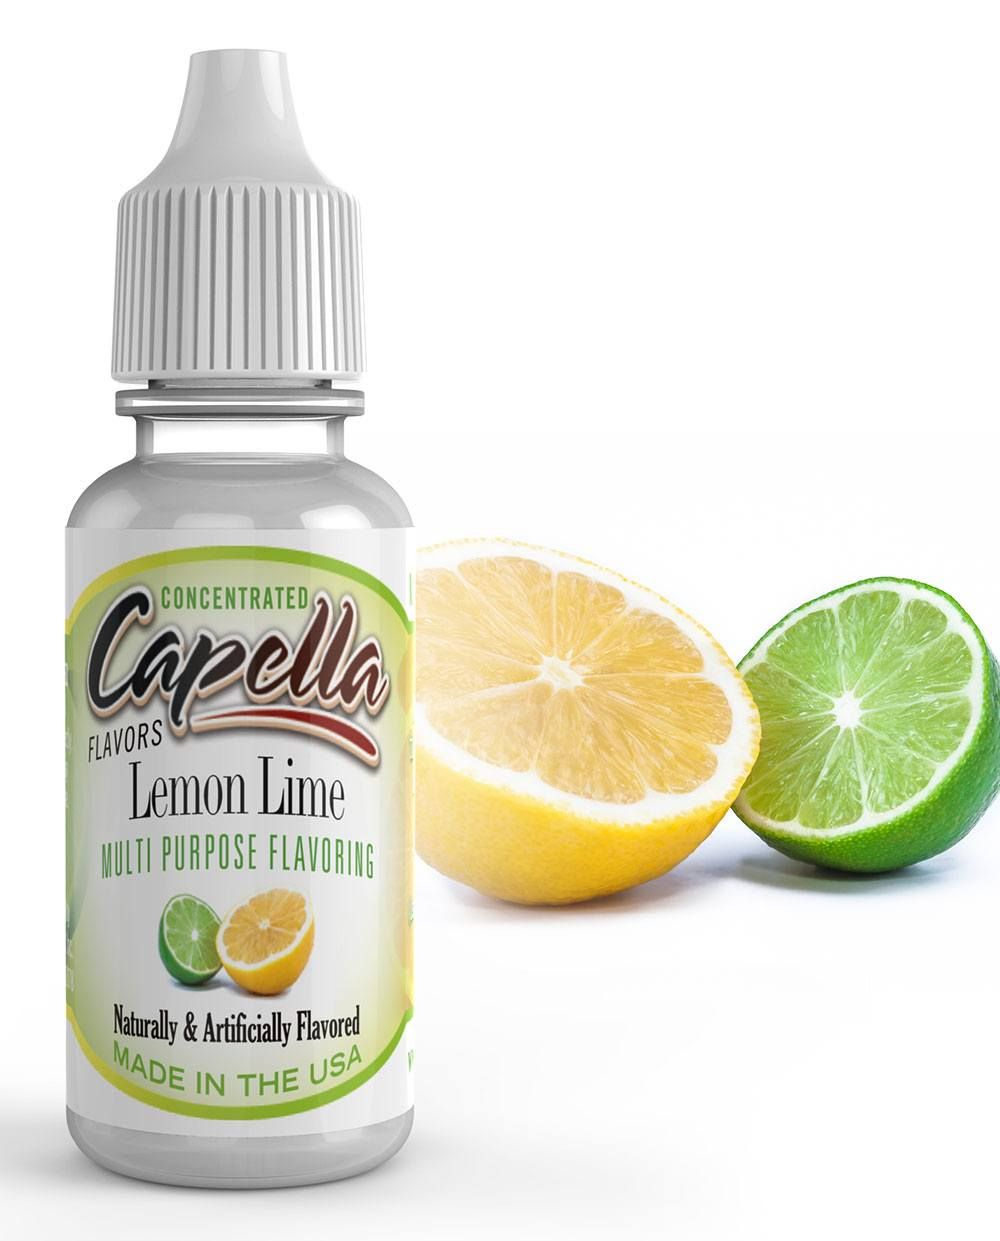 Capella Lemon Lime